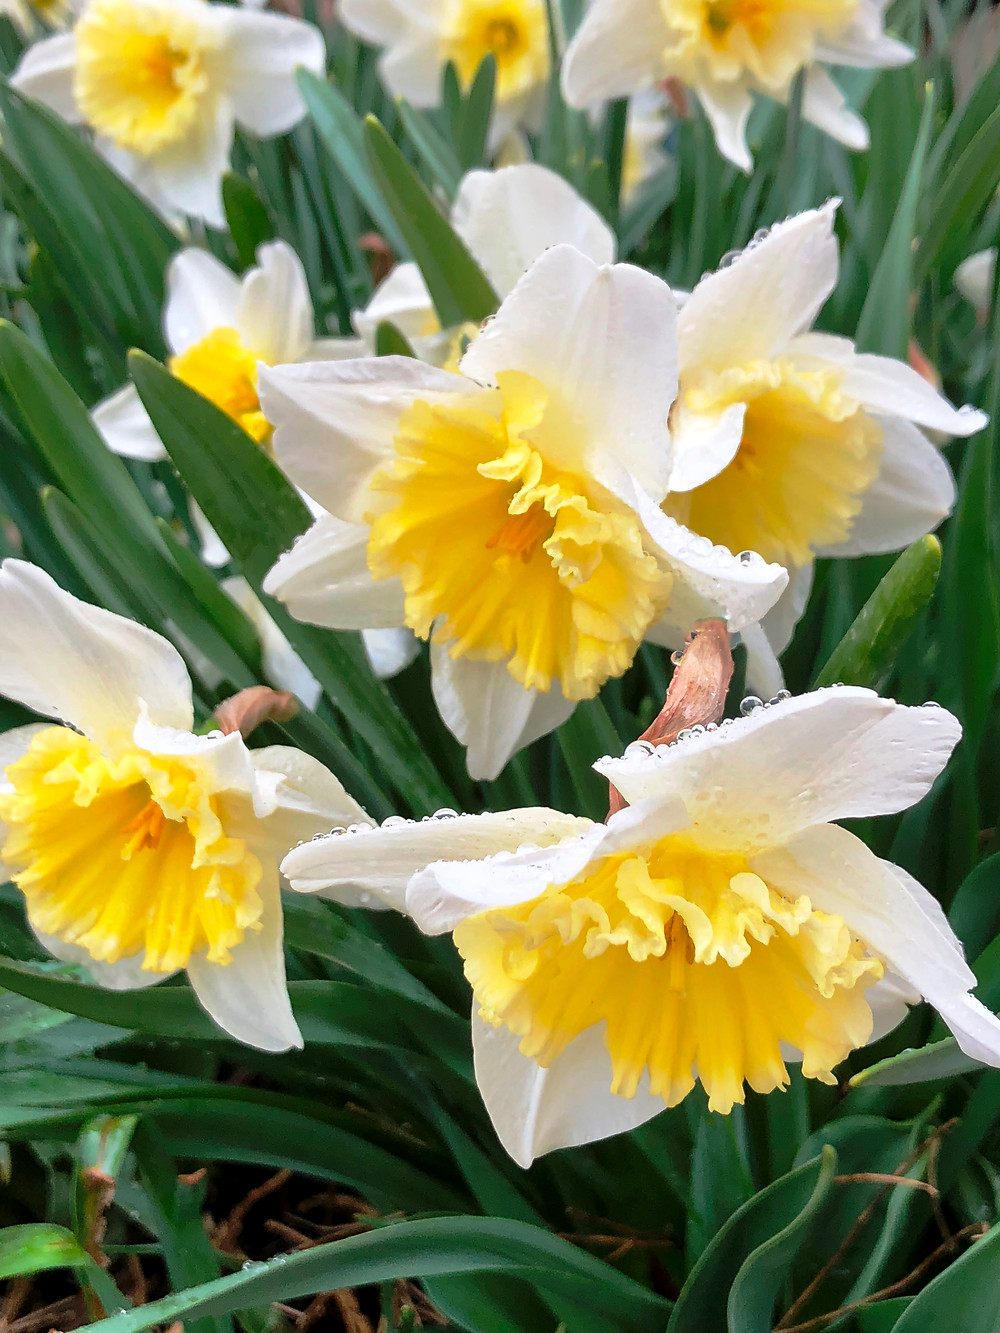 Daffodils at Lanthier Winery